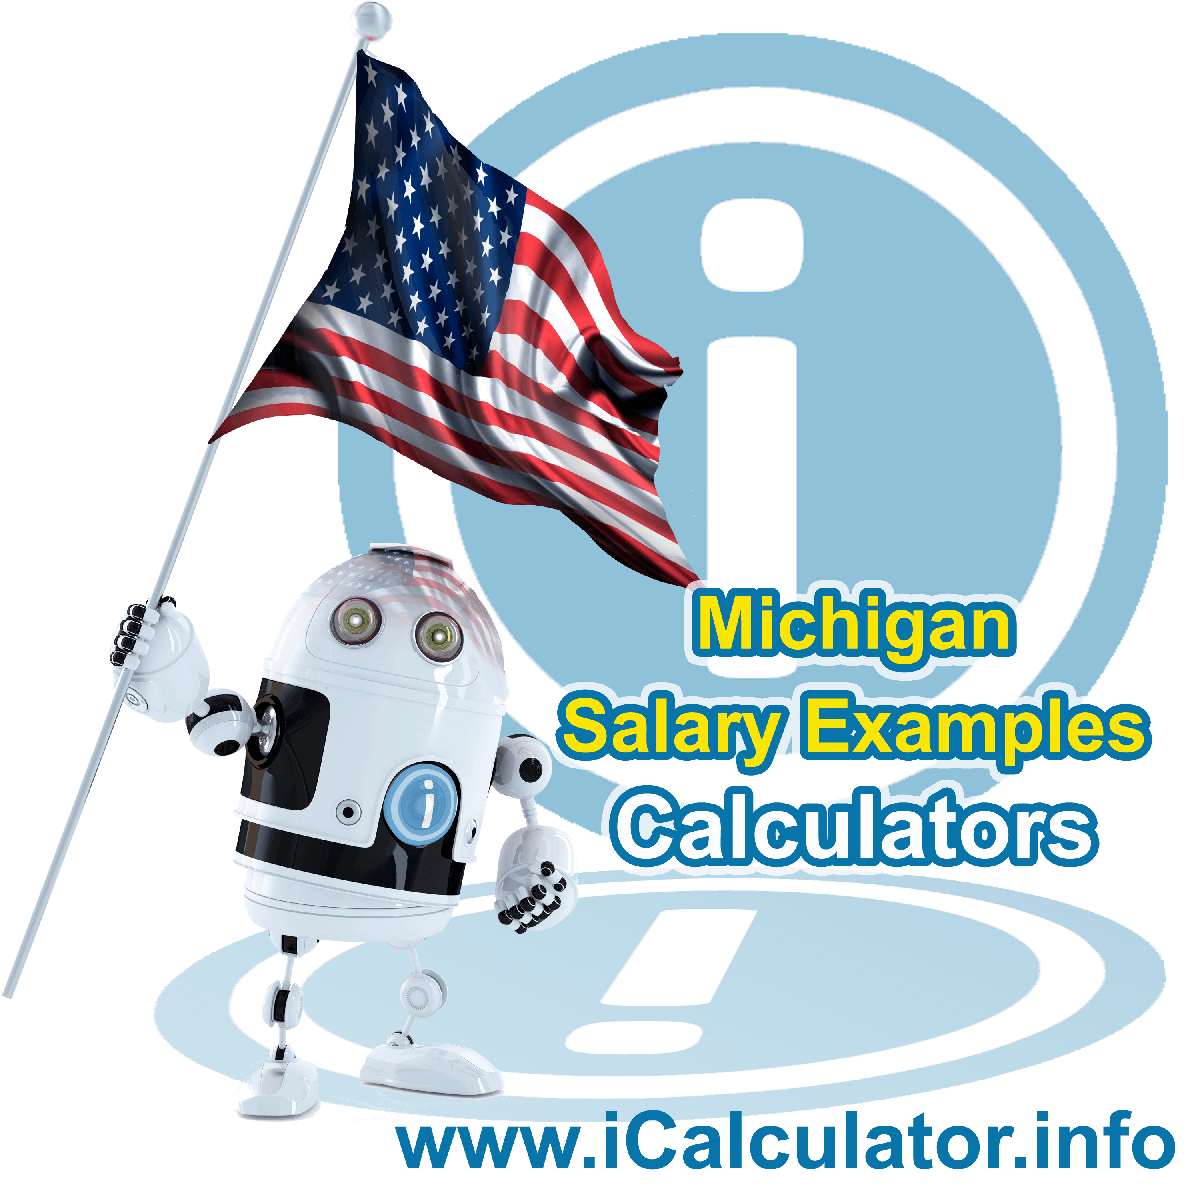 Michigan Salary Example for $10,000.00 in 2020 | iCalculator | $10,000.00 salary example for employee and employer paying Michigan State tincome taxes. Detailed salary after tax calculation including Michigan State Tax, Federal State Tax, Medicare Deductions, Social Security, Capital Gains and other income tax and salary deductions complete with supporting Michigan state tax tables